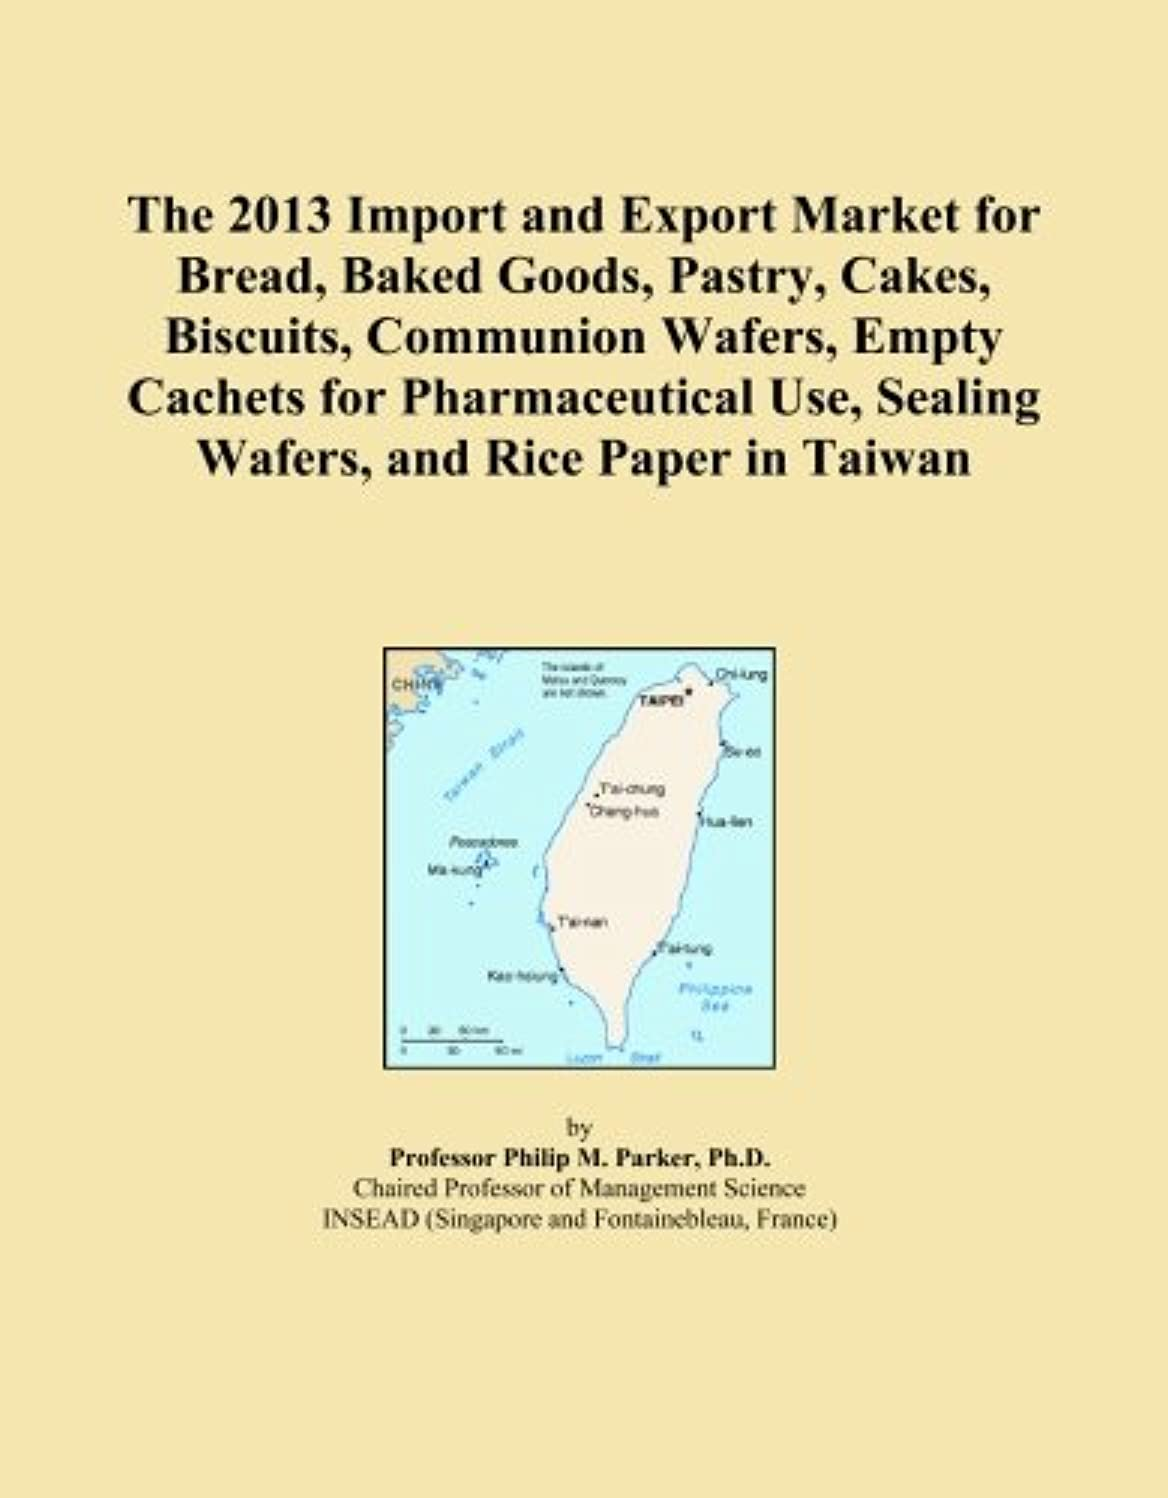 The 2013 Import and Export Market for Bread, Baked Goods, Pastry, Cakes, Biscuits, Communion Wafers, Empty Cachets for Pharmaceutical Use, Sealing Wafers, and Rice Paper in Taiwan